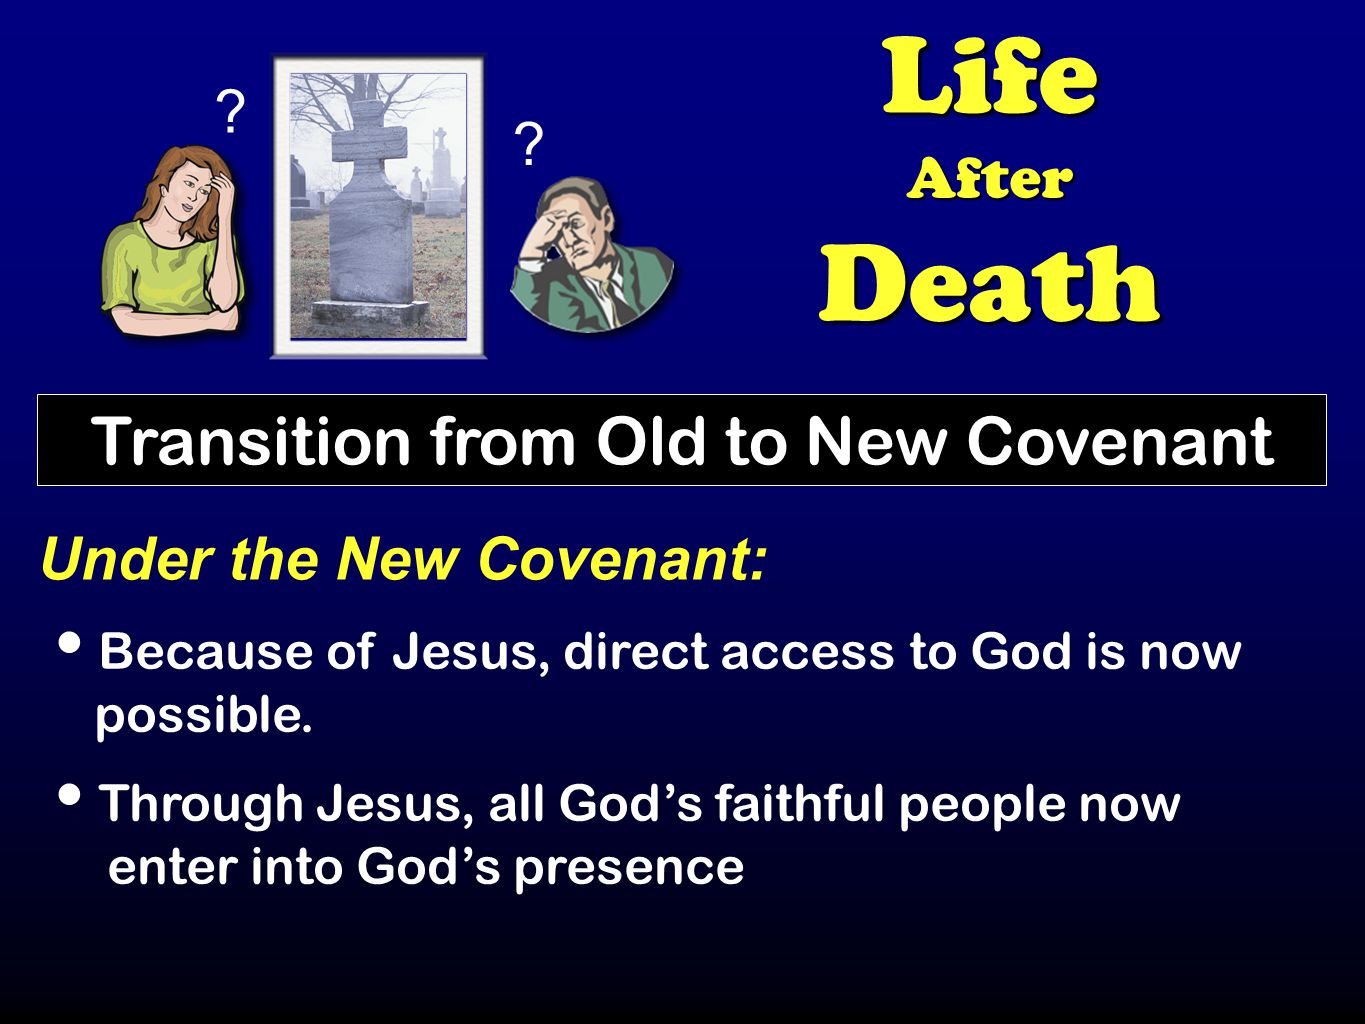 LifeAfterDeath Transition from Old to New Covenant Under the New Covenant: Because of Jesus, direct access to God is now possible.